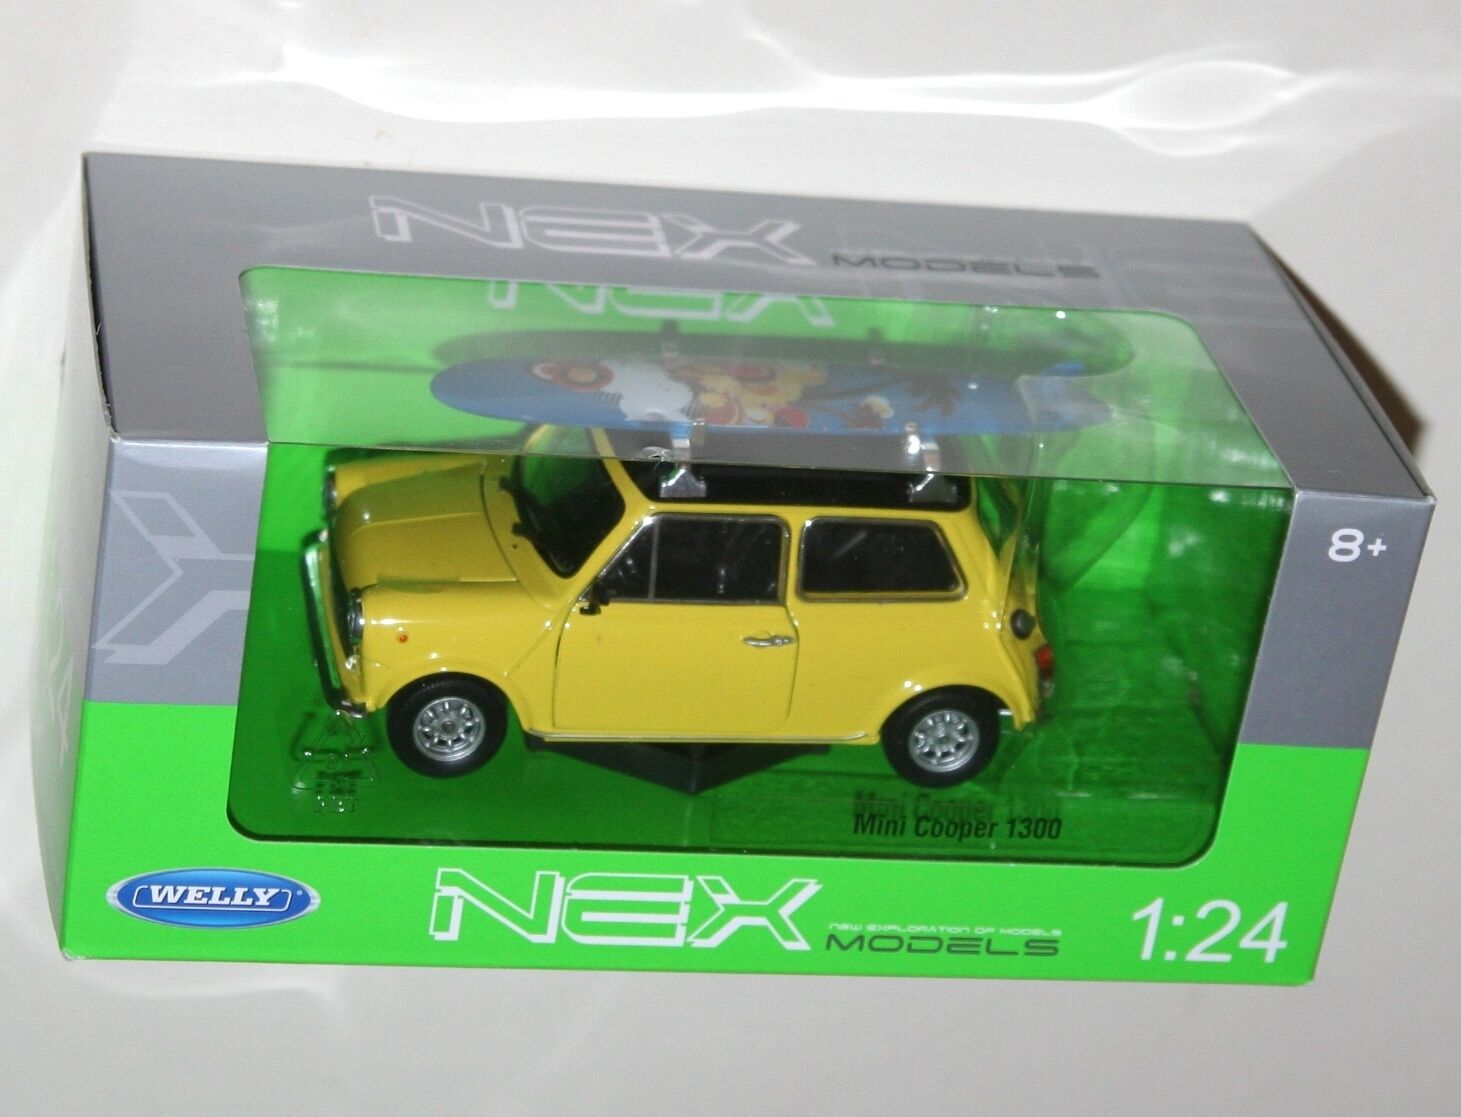 Welly - - - MINI COOPER 1300 (Yellow + Surfboard) Die Cast Model - Scale 1 24 c6e7a2